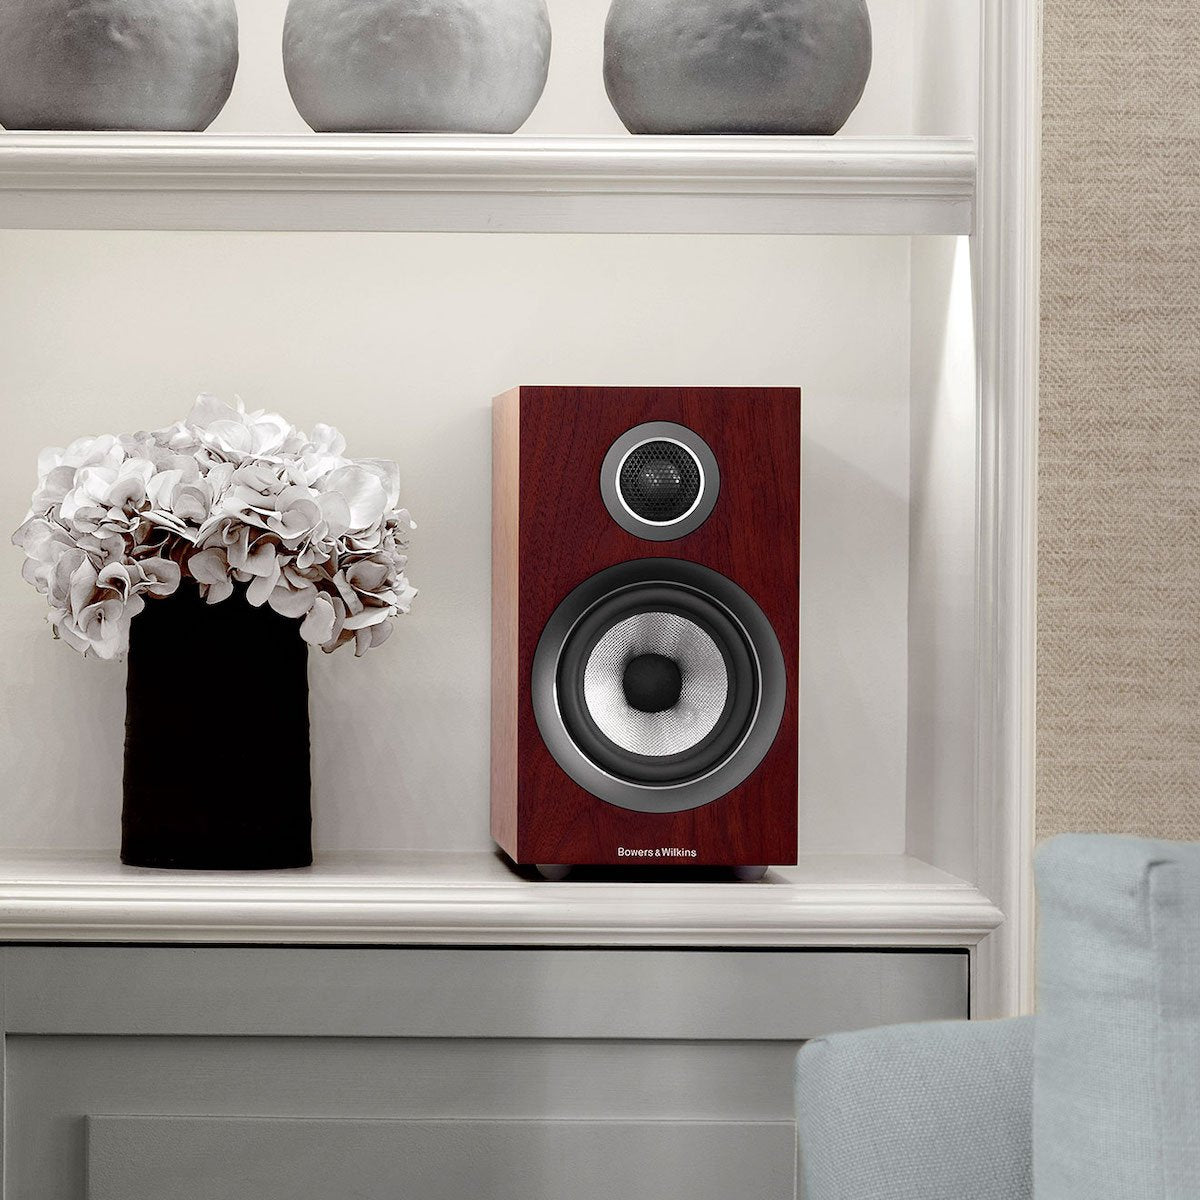 Bowers & Wilkins 707 S2 - Bookshelf Speaker - Pair, Bowers & Wilkins, Bookshelf Speaker - AVStore.in